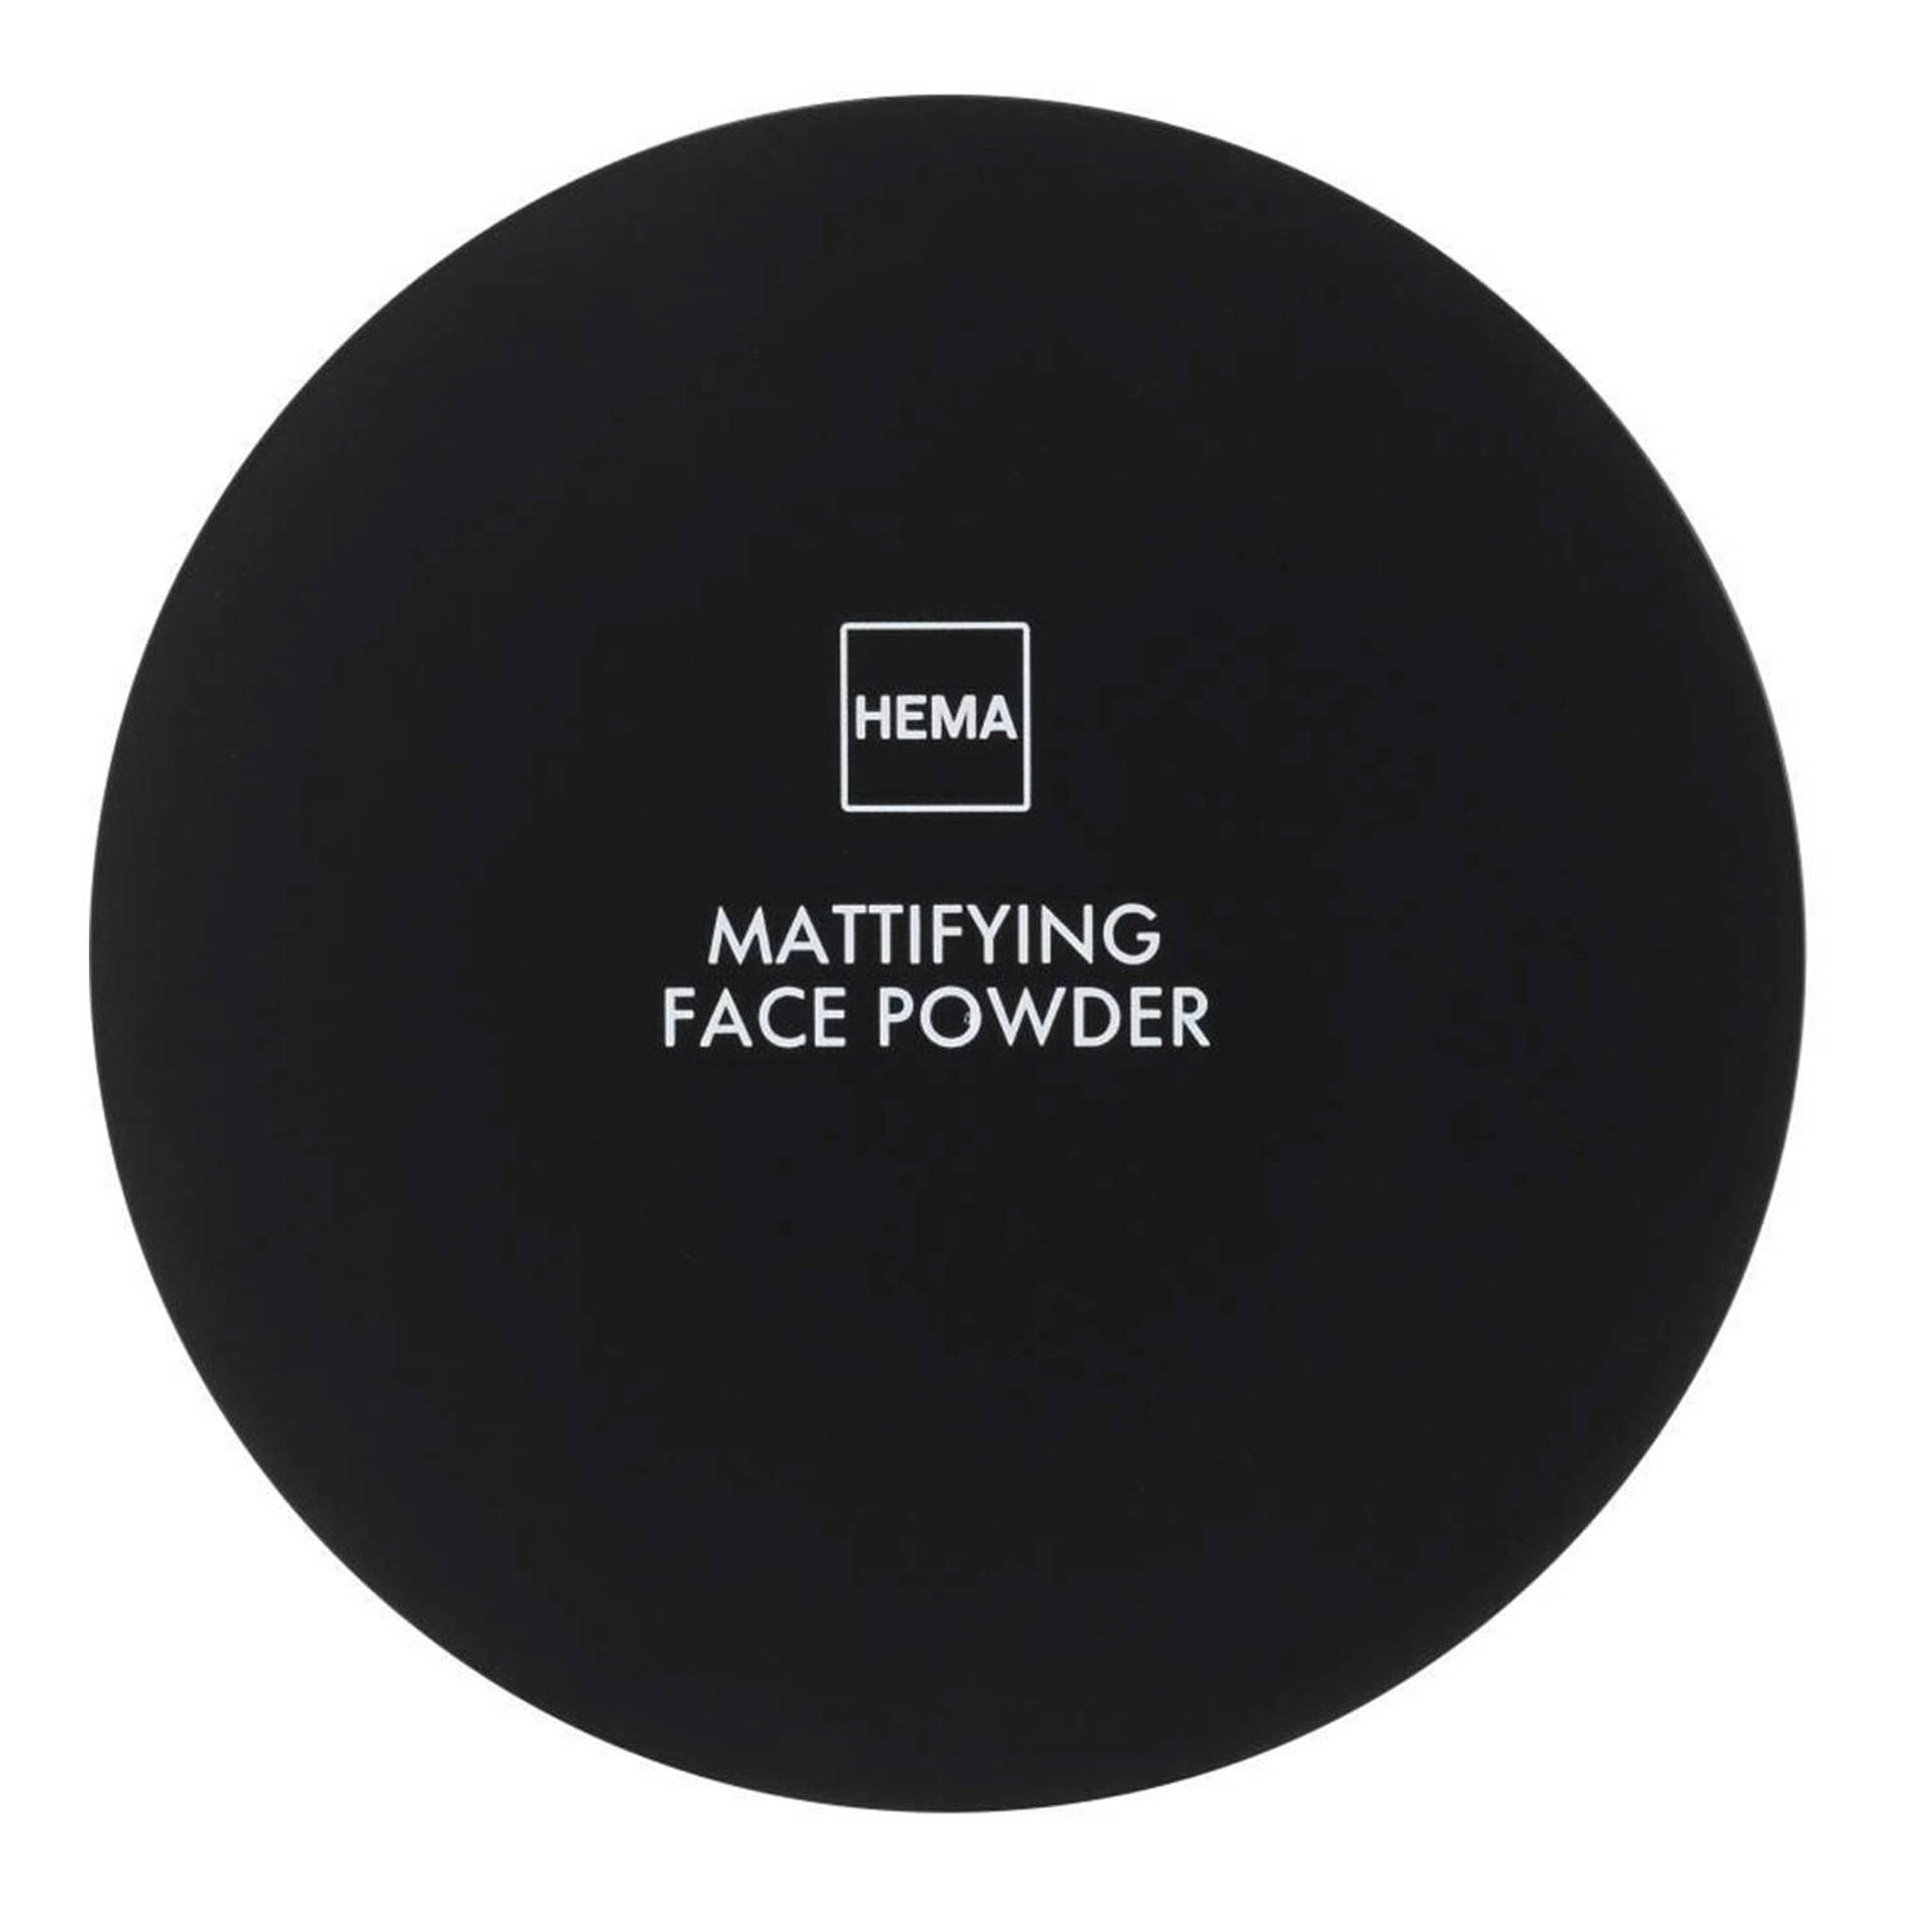 Hema Mattifying Face Powder